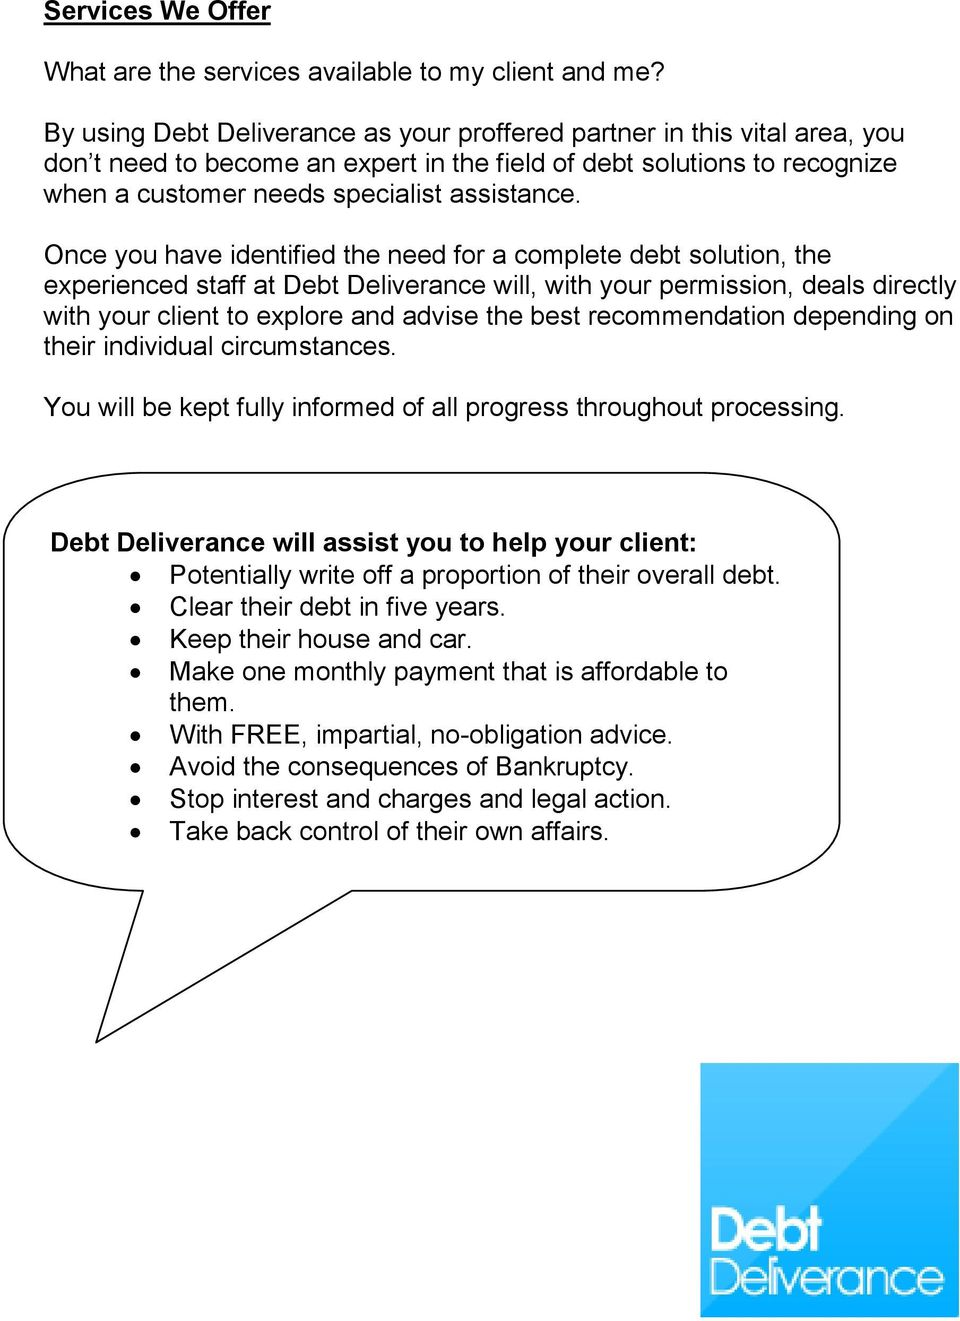 Once you have identified the need for a complete debt solution, the experienced staff at Debt Deliverance will, with your permission, deals directly with your client to explore and advise the best